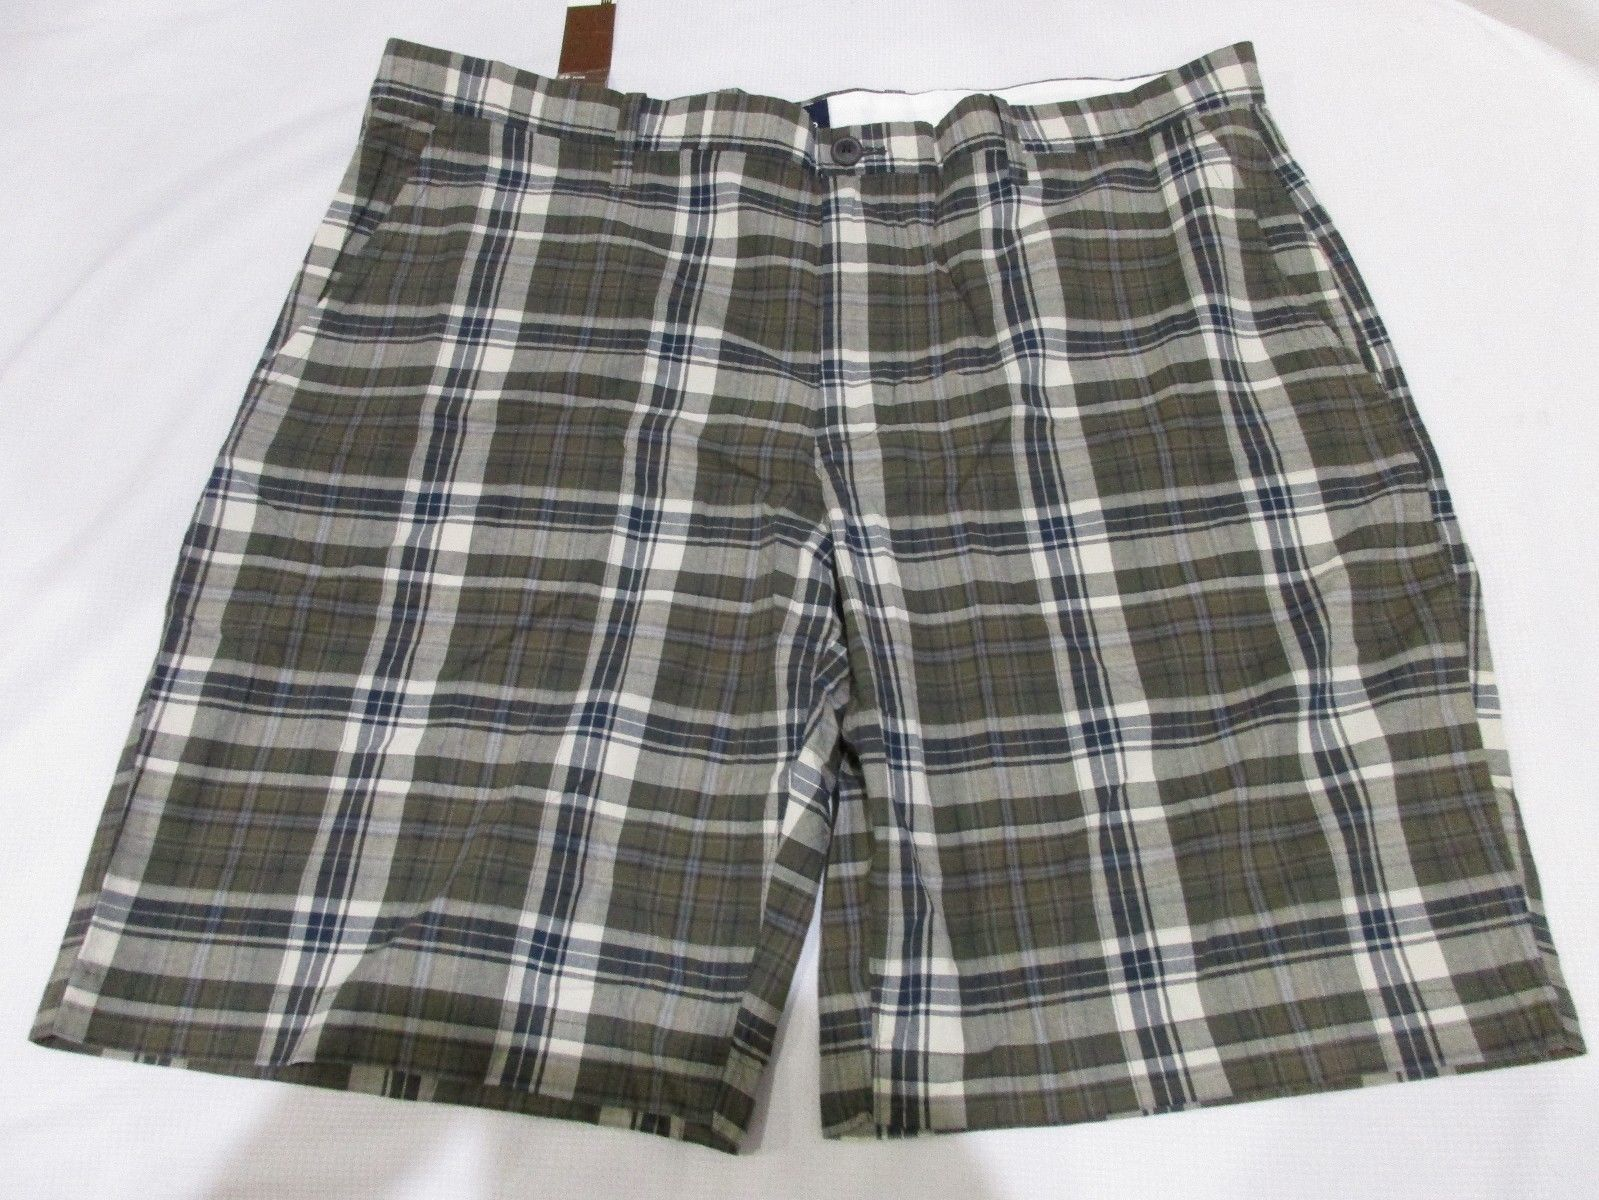 NWT Mens Gap Plaid Blue Green Flat Front Shorts Size 42